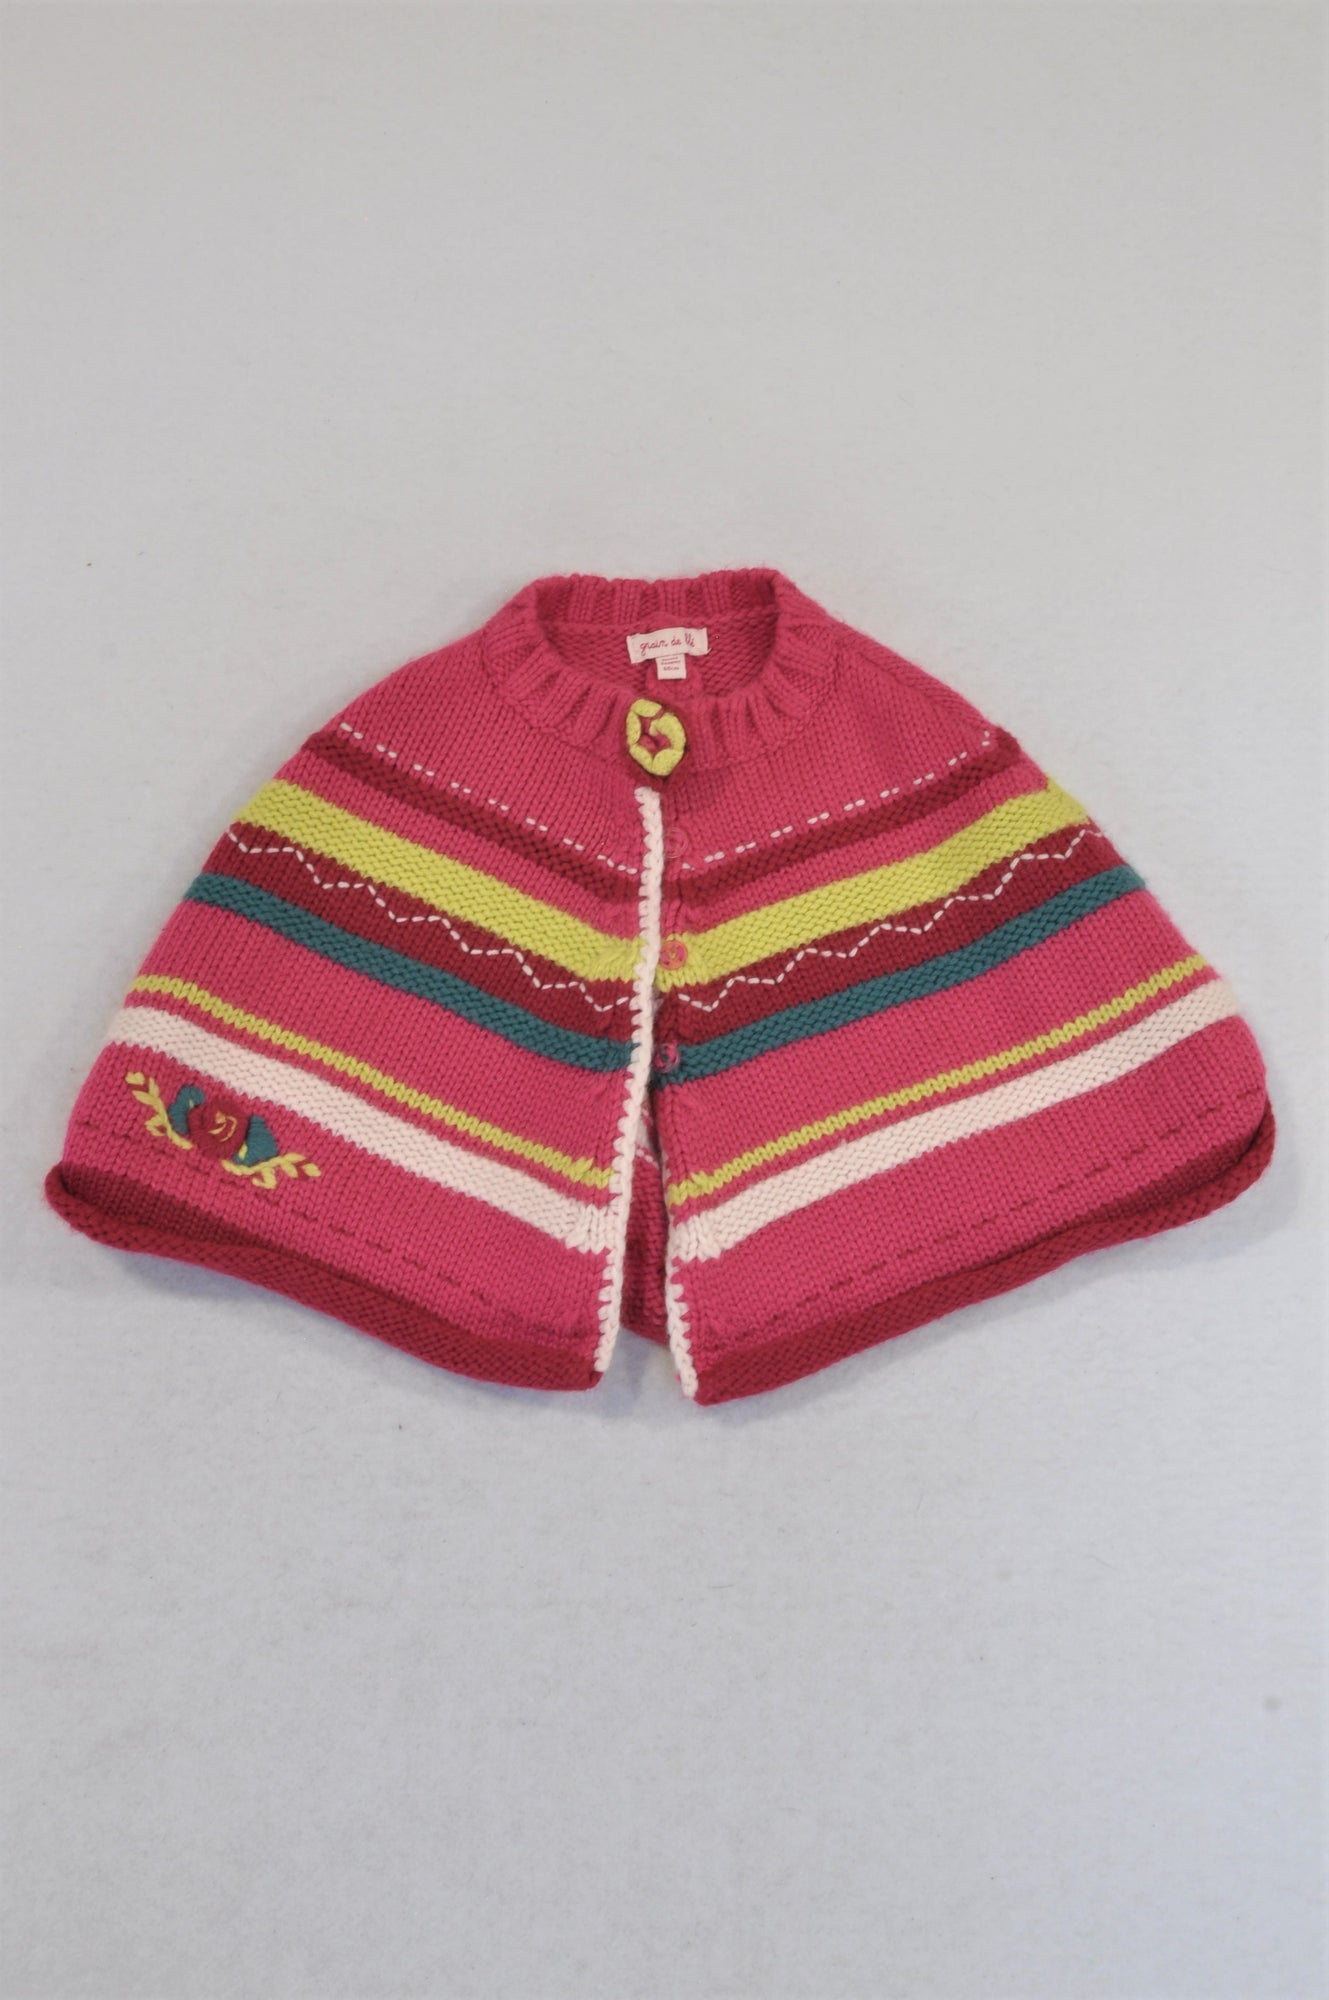 Grain de Ble Cerise Knit Yellow Trim Jersey Girls 3-6 months